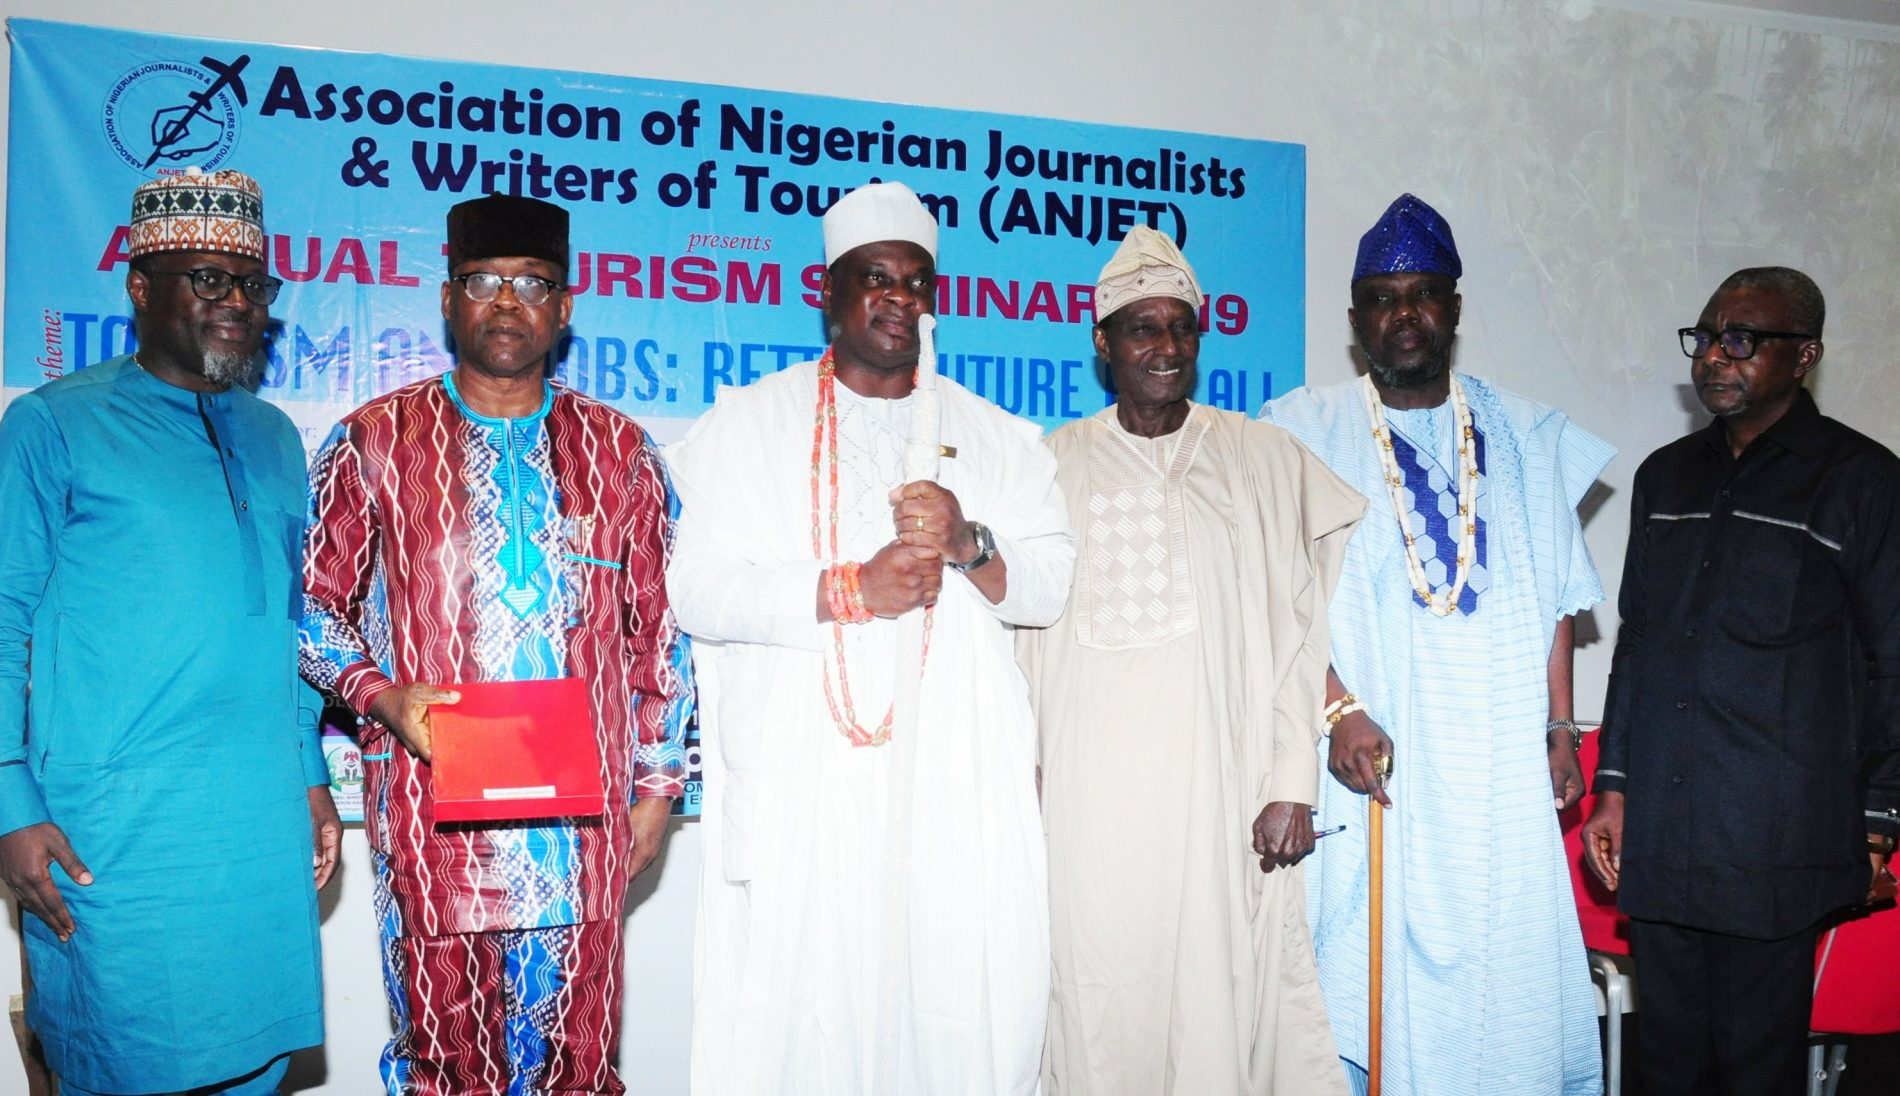 ANJET SEMINAR; Olota of Otta, Otunba Akinboboye, Olowo, others task Nigeria government on tourism